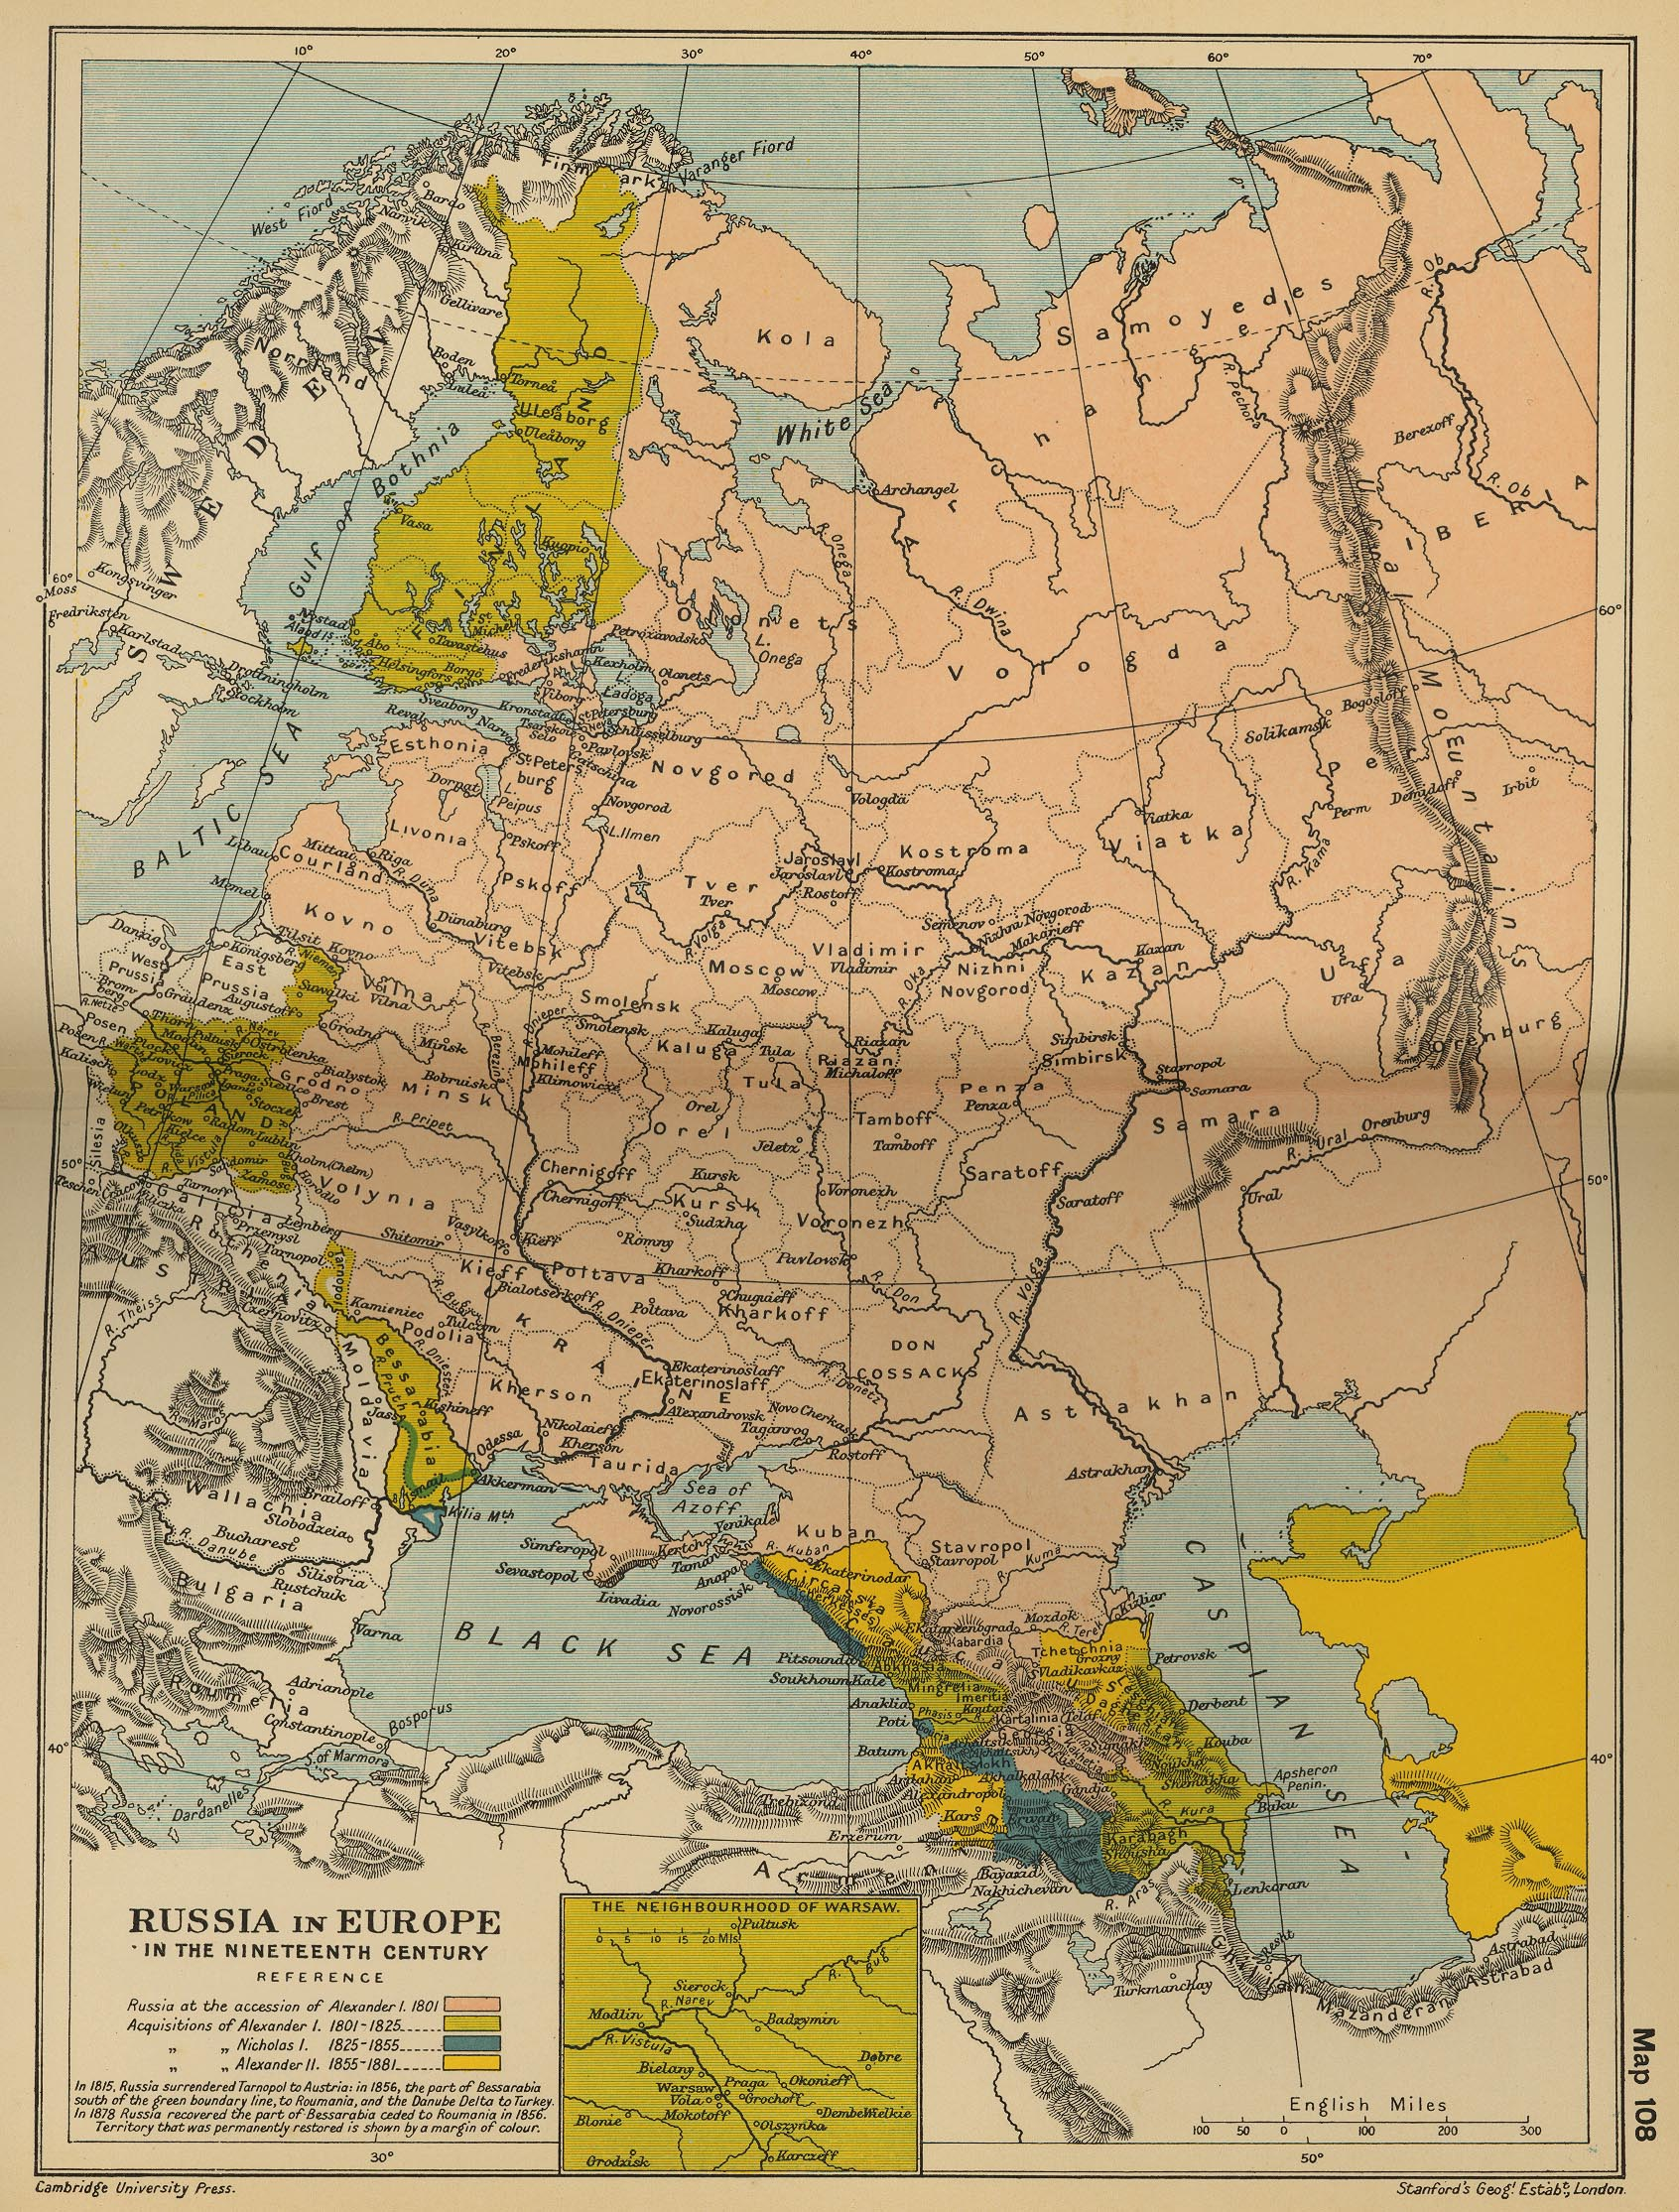 Map of Russia in Europe 19th Century